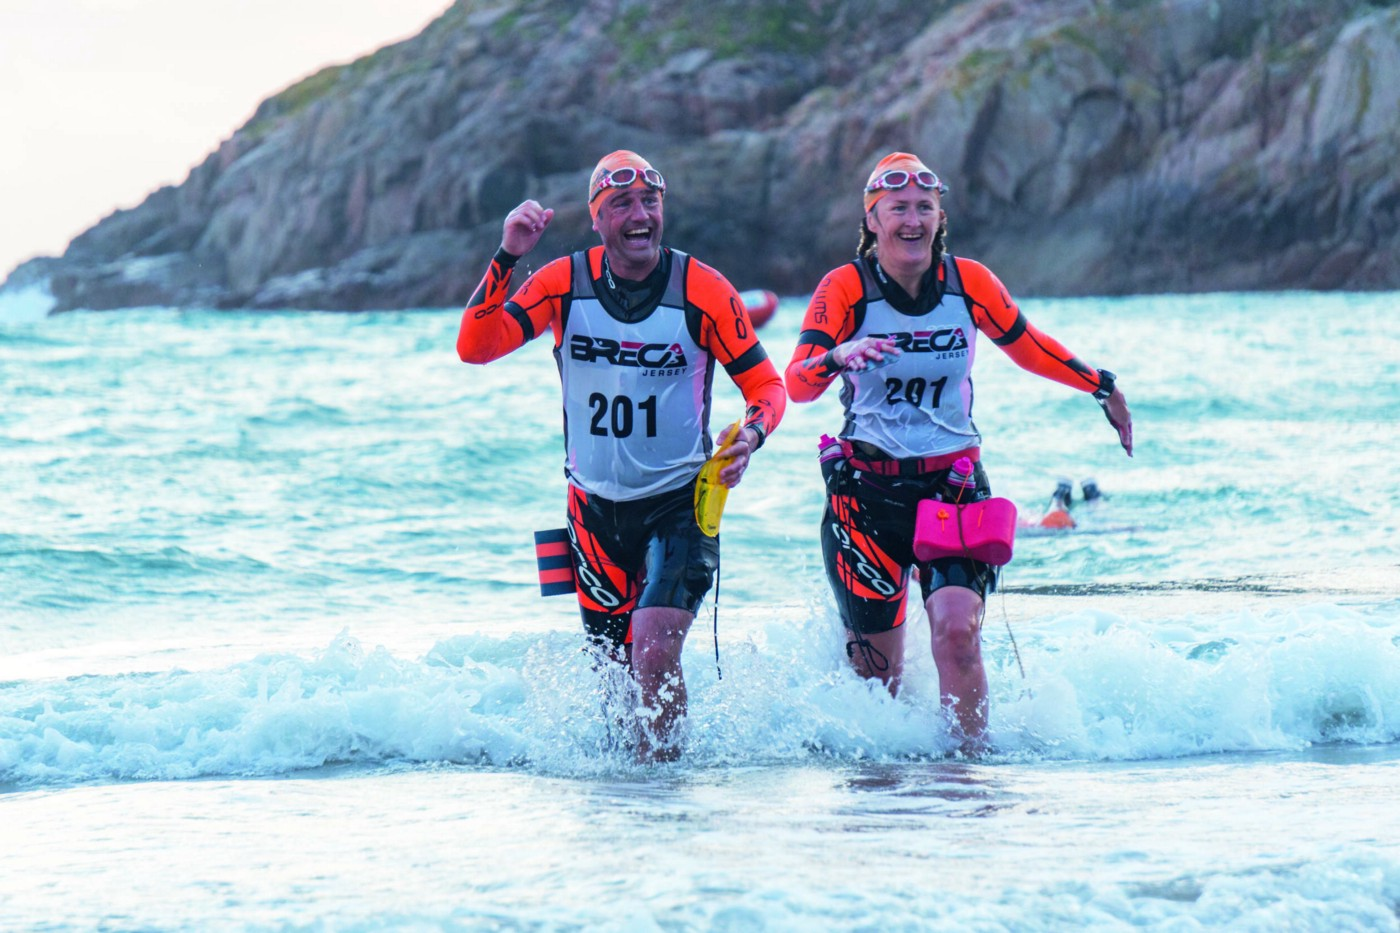 A man and woman emerging from the sea during a swimrun event